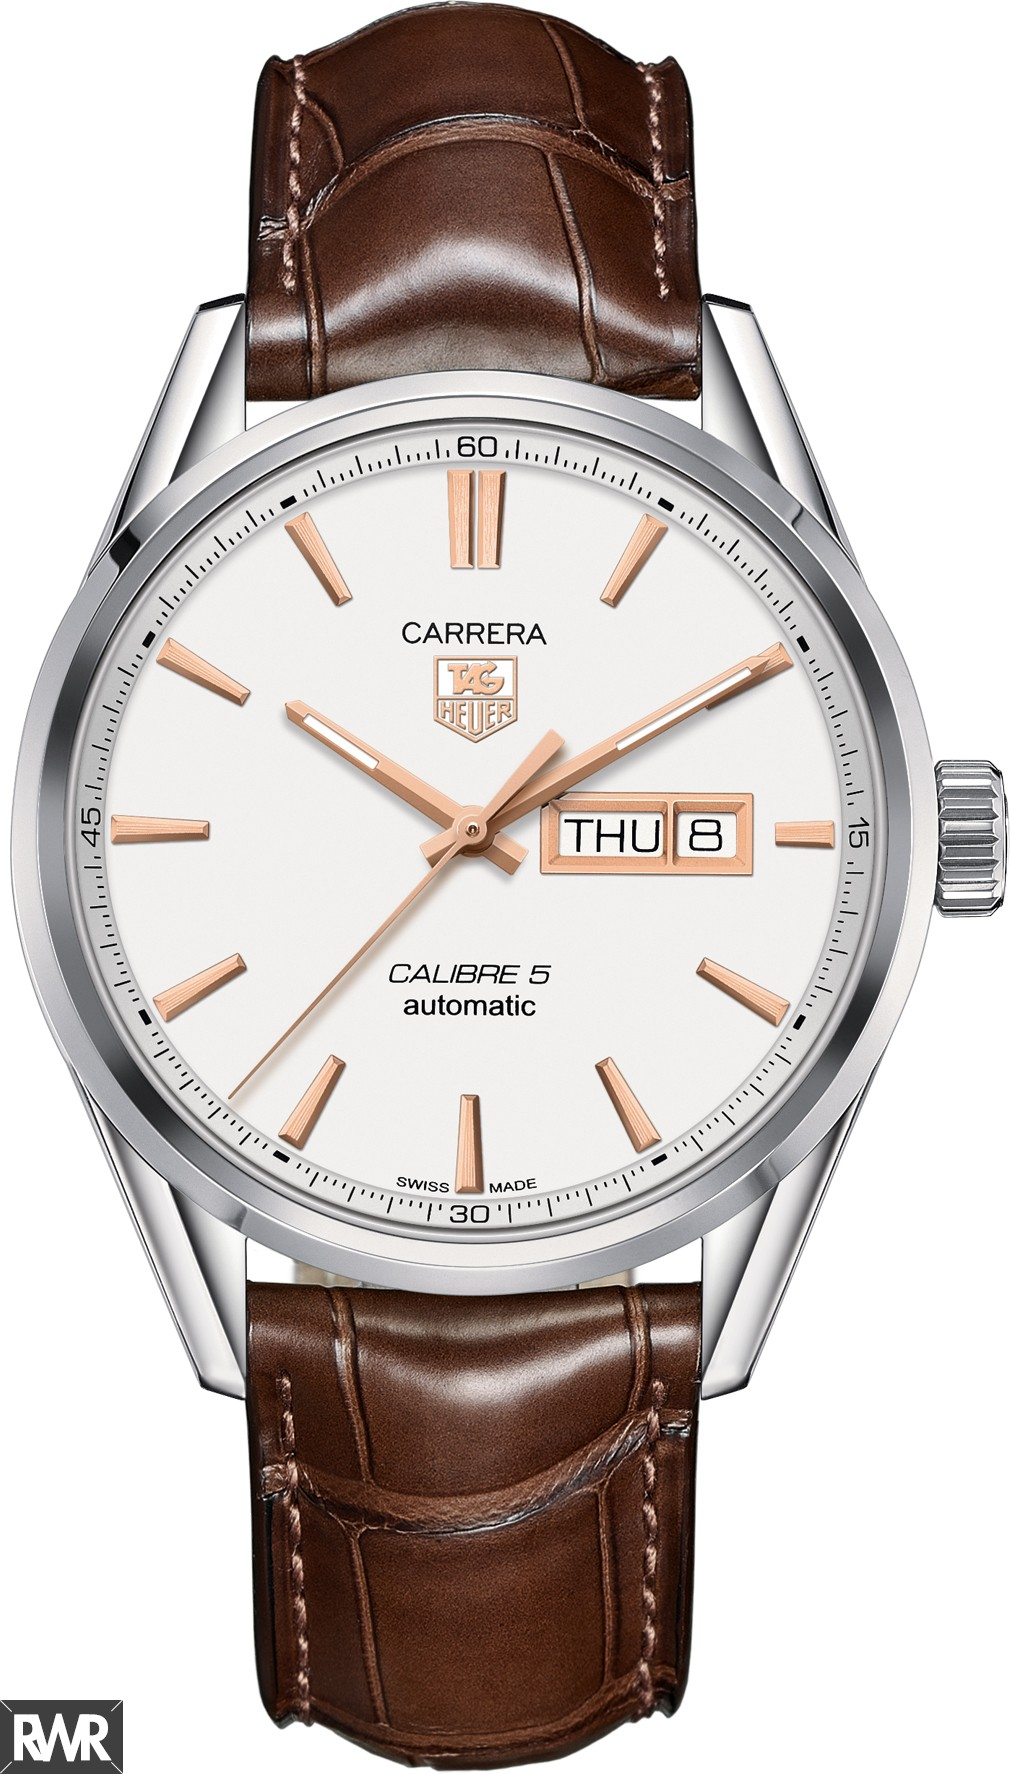 Replica TAG Heuer Carrera Calibre 5 Day-Date Automatic Watch 41 mm WAR201D.FC6291